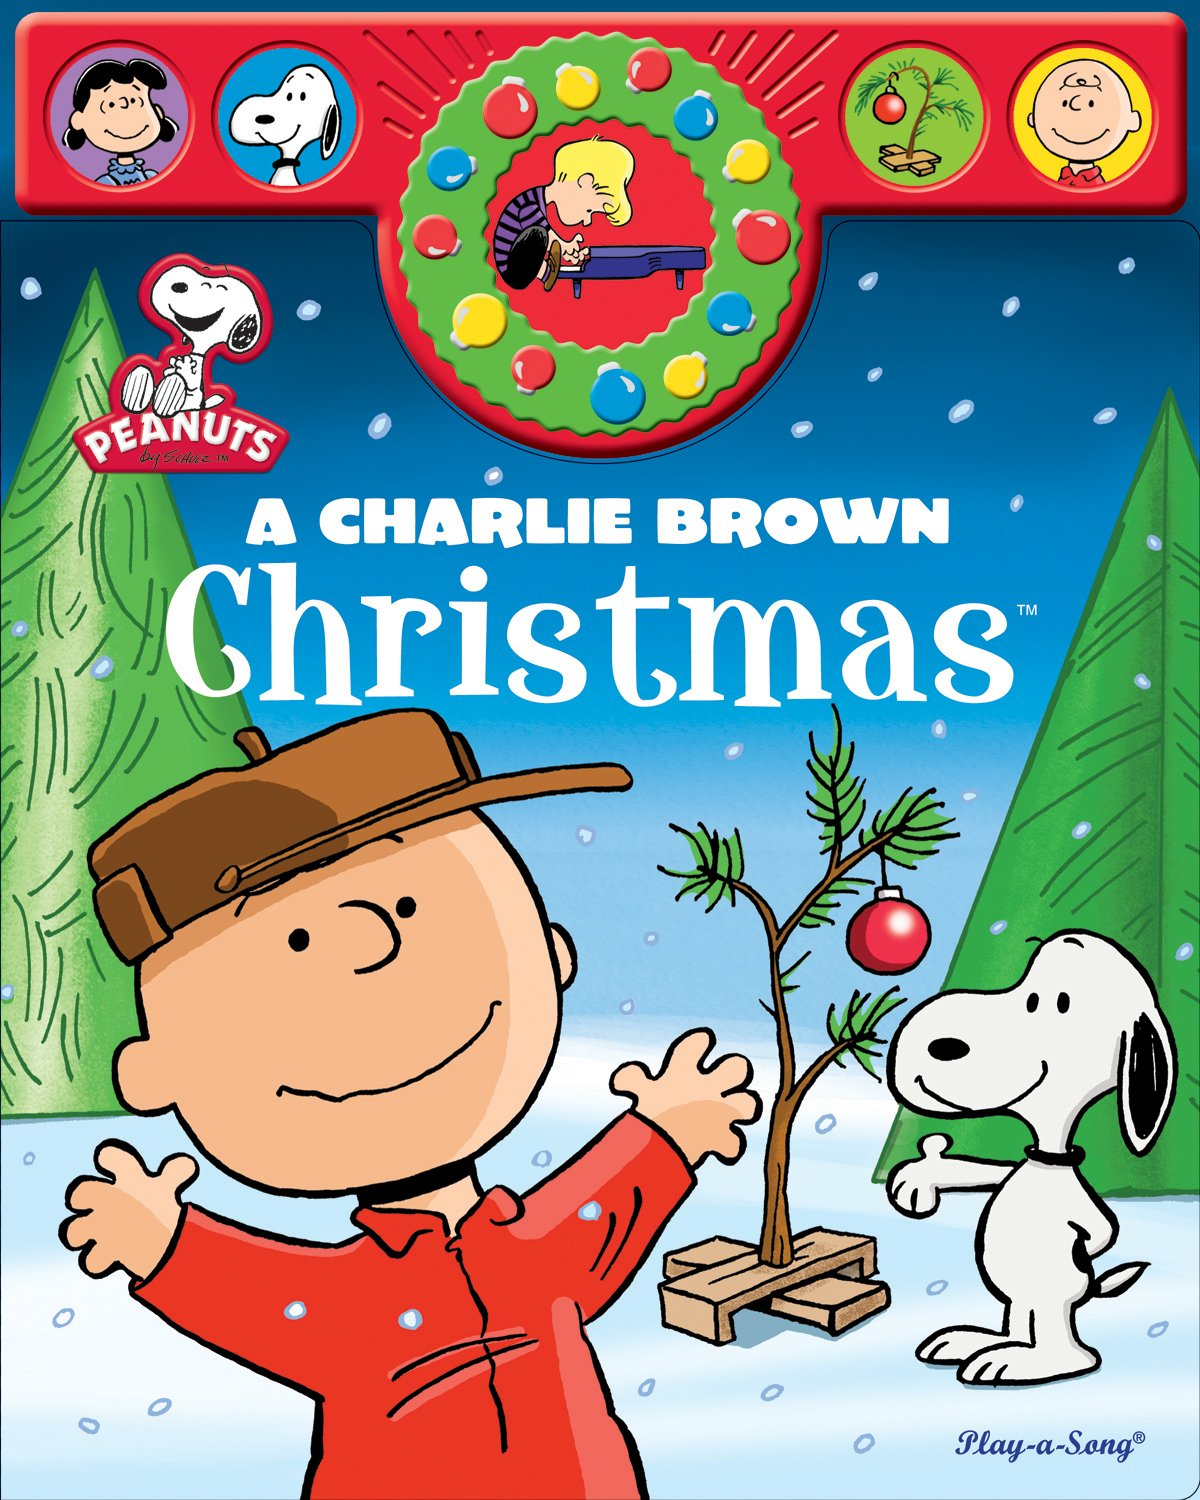 a charlie brown christmas play a song book peanuts play a sound editors of publications international 9781450821728 amazoncom books - Snoopy Christmas Song